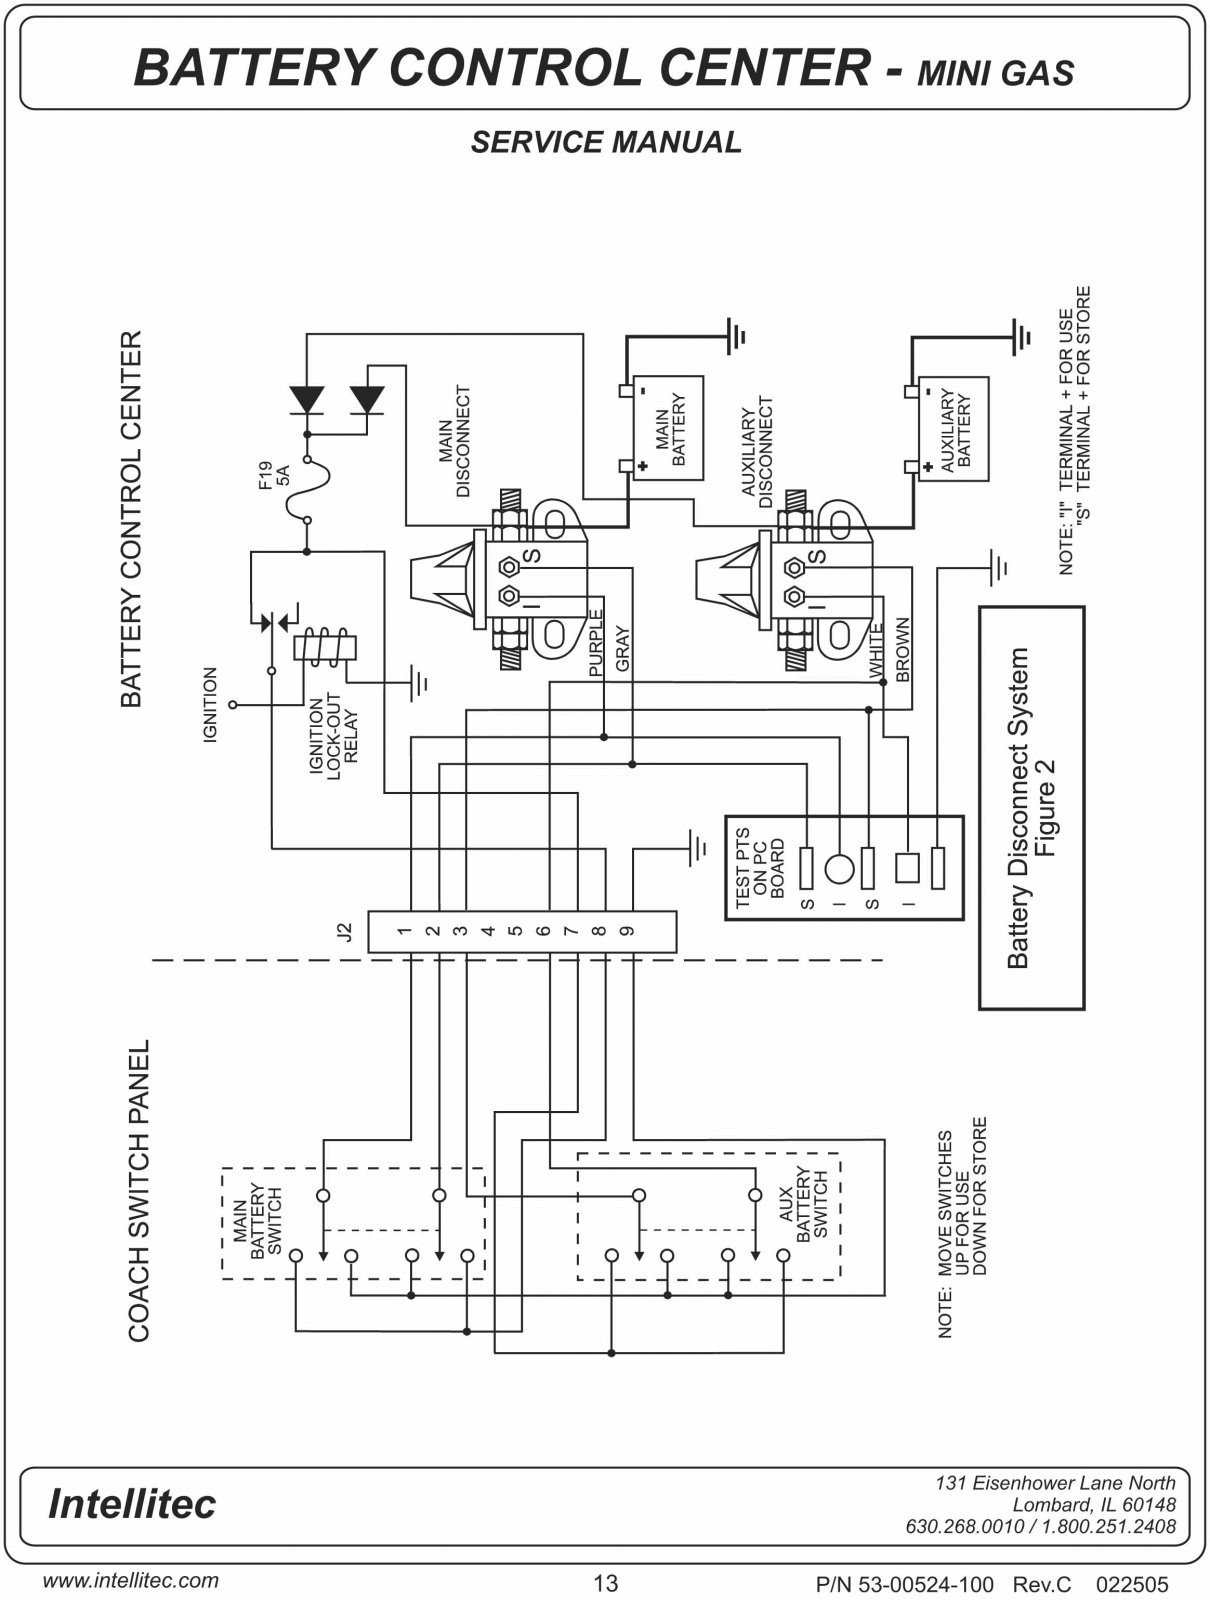 Thor Wiring Diagram And Schematics Hifonics Amp Diagrams Gmc 1998s10s15luvblazerenginecontrolswiringdiagrams Wire Rh Bleongroup Co Cau